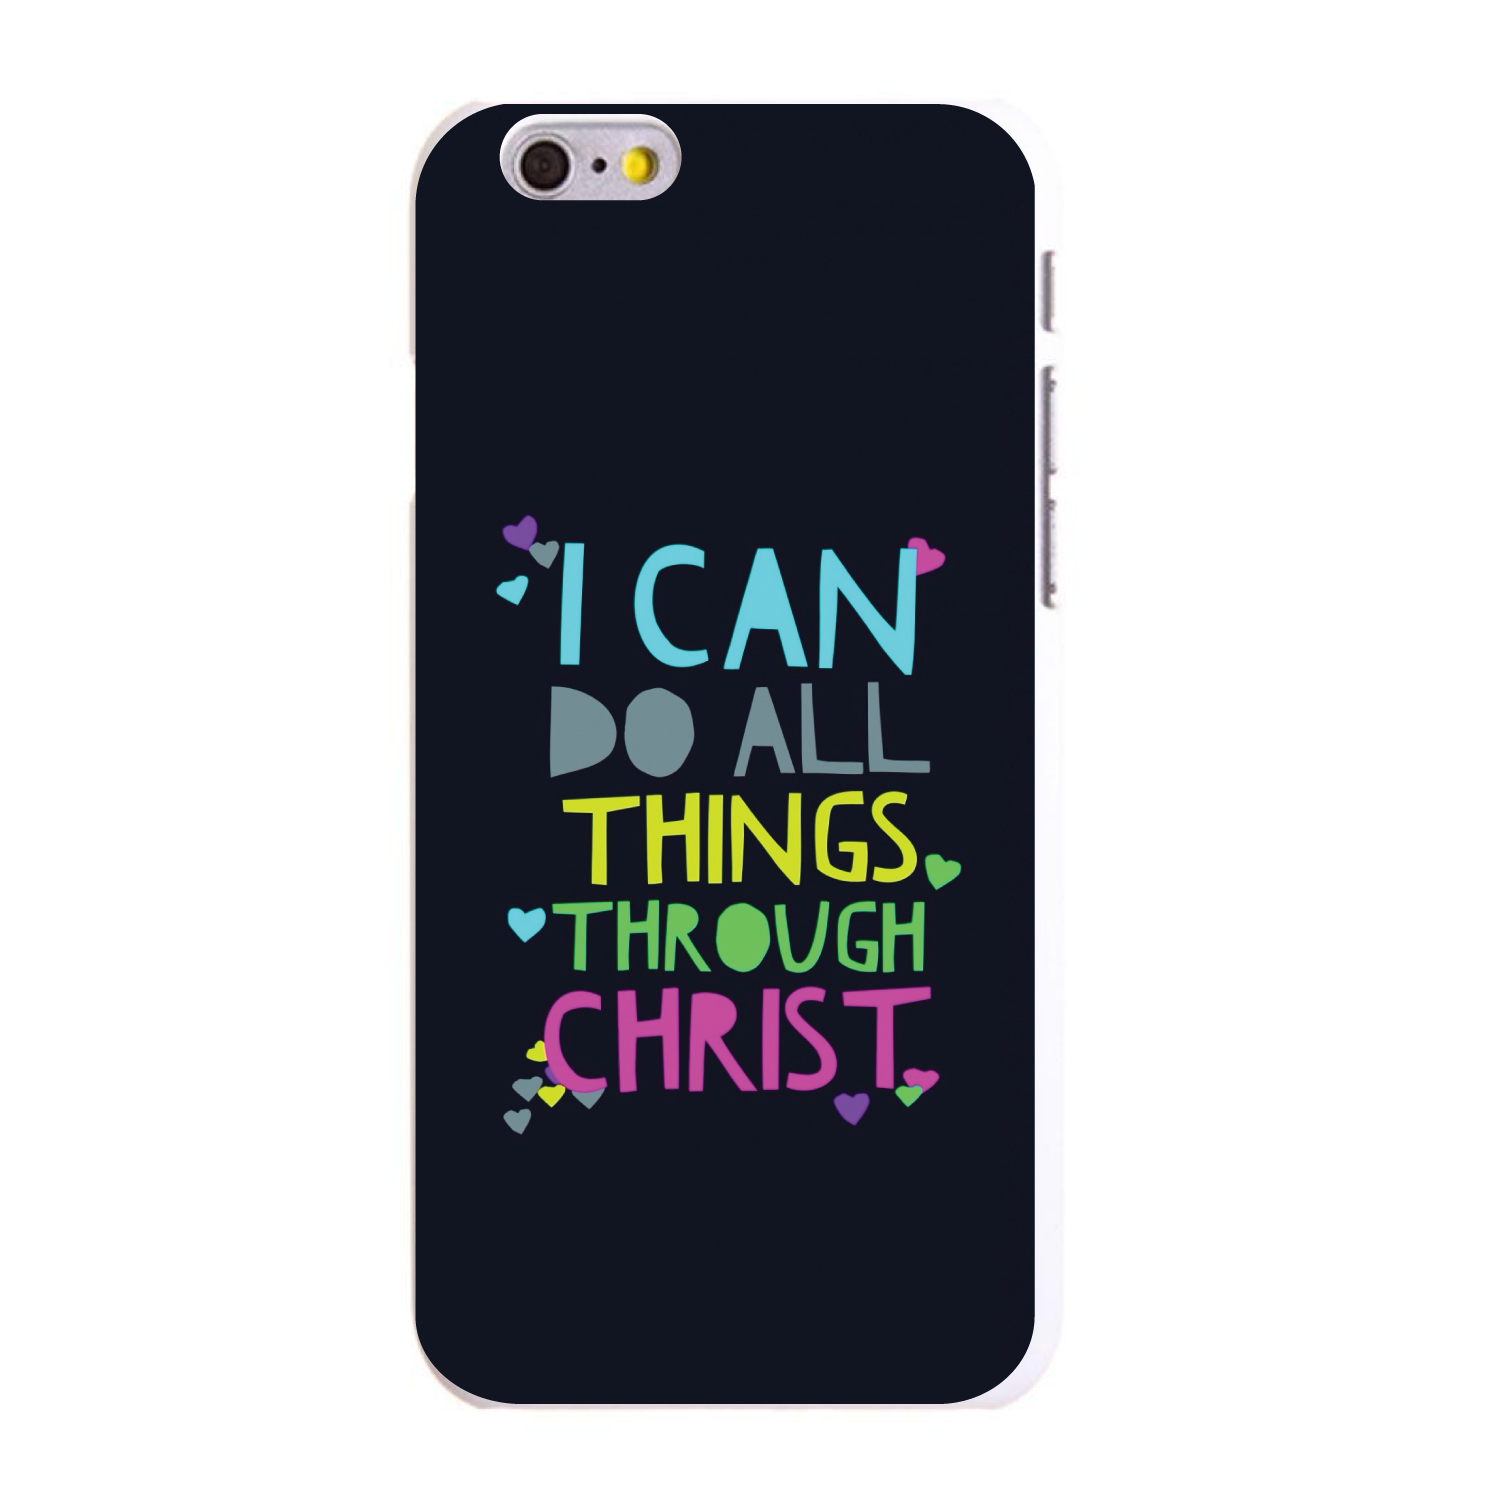 "CUSTOM White Hard Plastic Snap-On Case for Apple iPhone 6 PLUS / 6S PLUS (5.5"" Screen) - I Can Do All Things Through Christ"